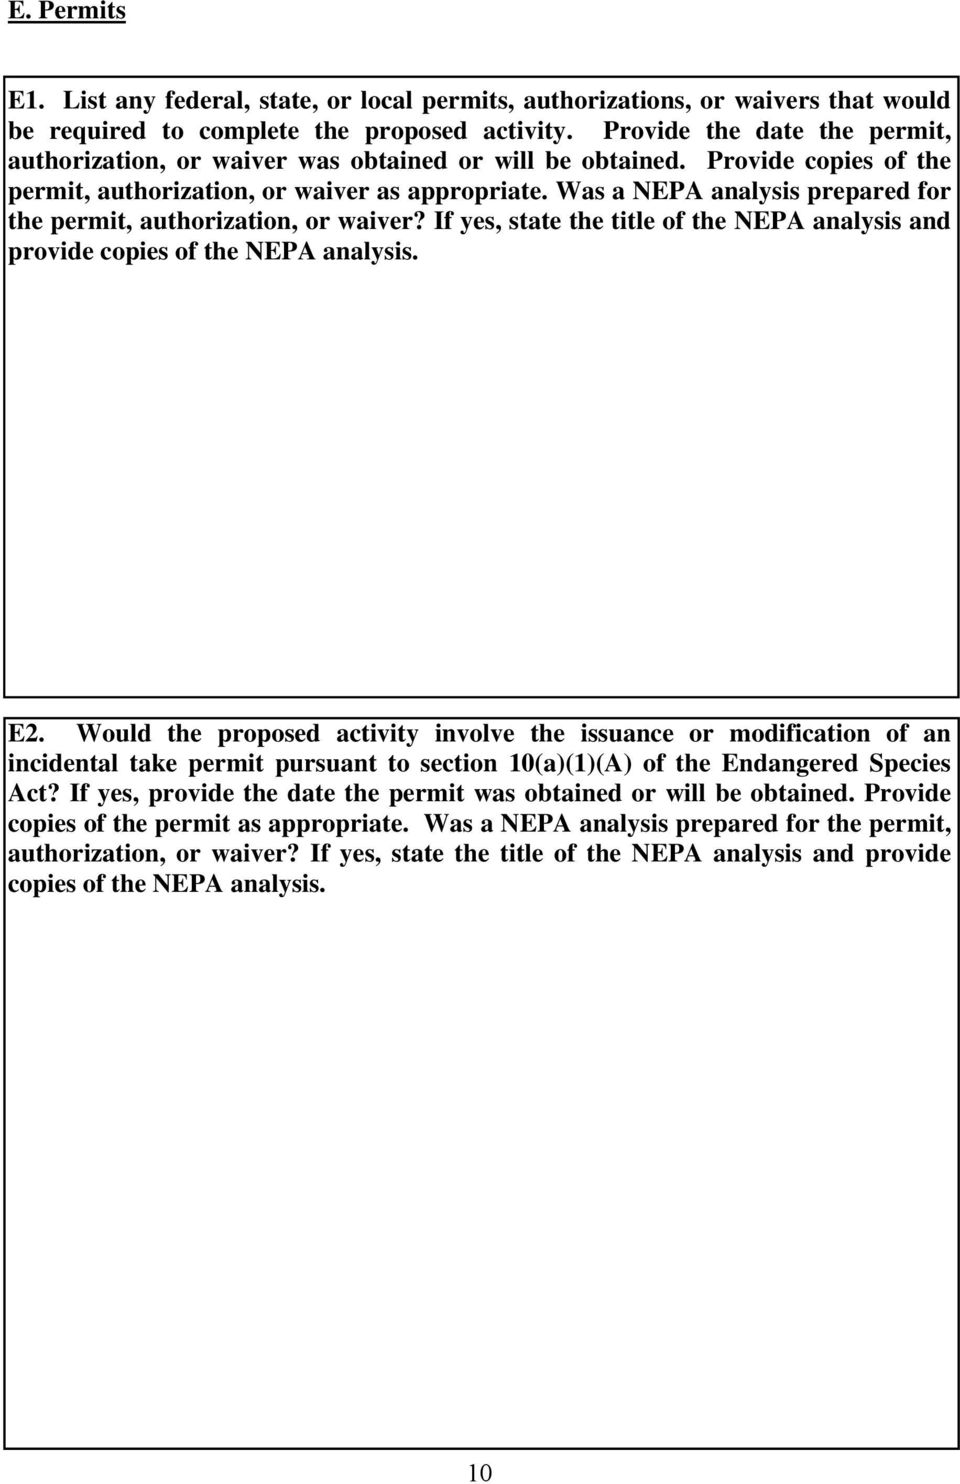 Was a NEPA analysis prepared for the permit, authorization, or waiver? If yes, state the title of the NEPA analysis and provide copies of the NEPA analysis. E2.